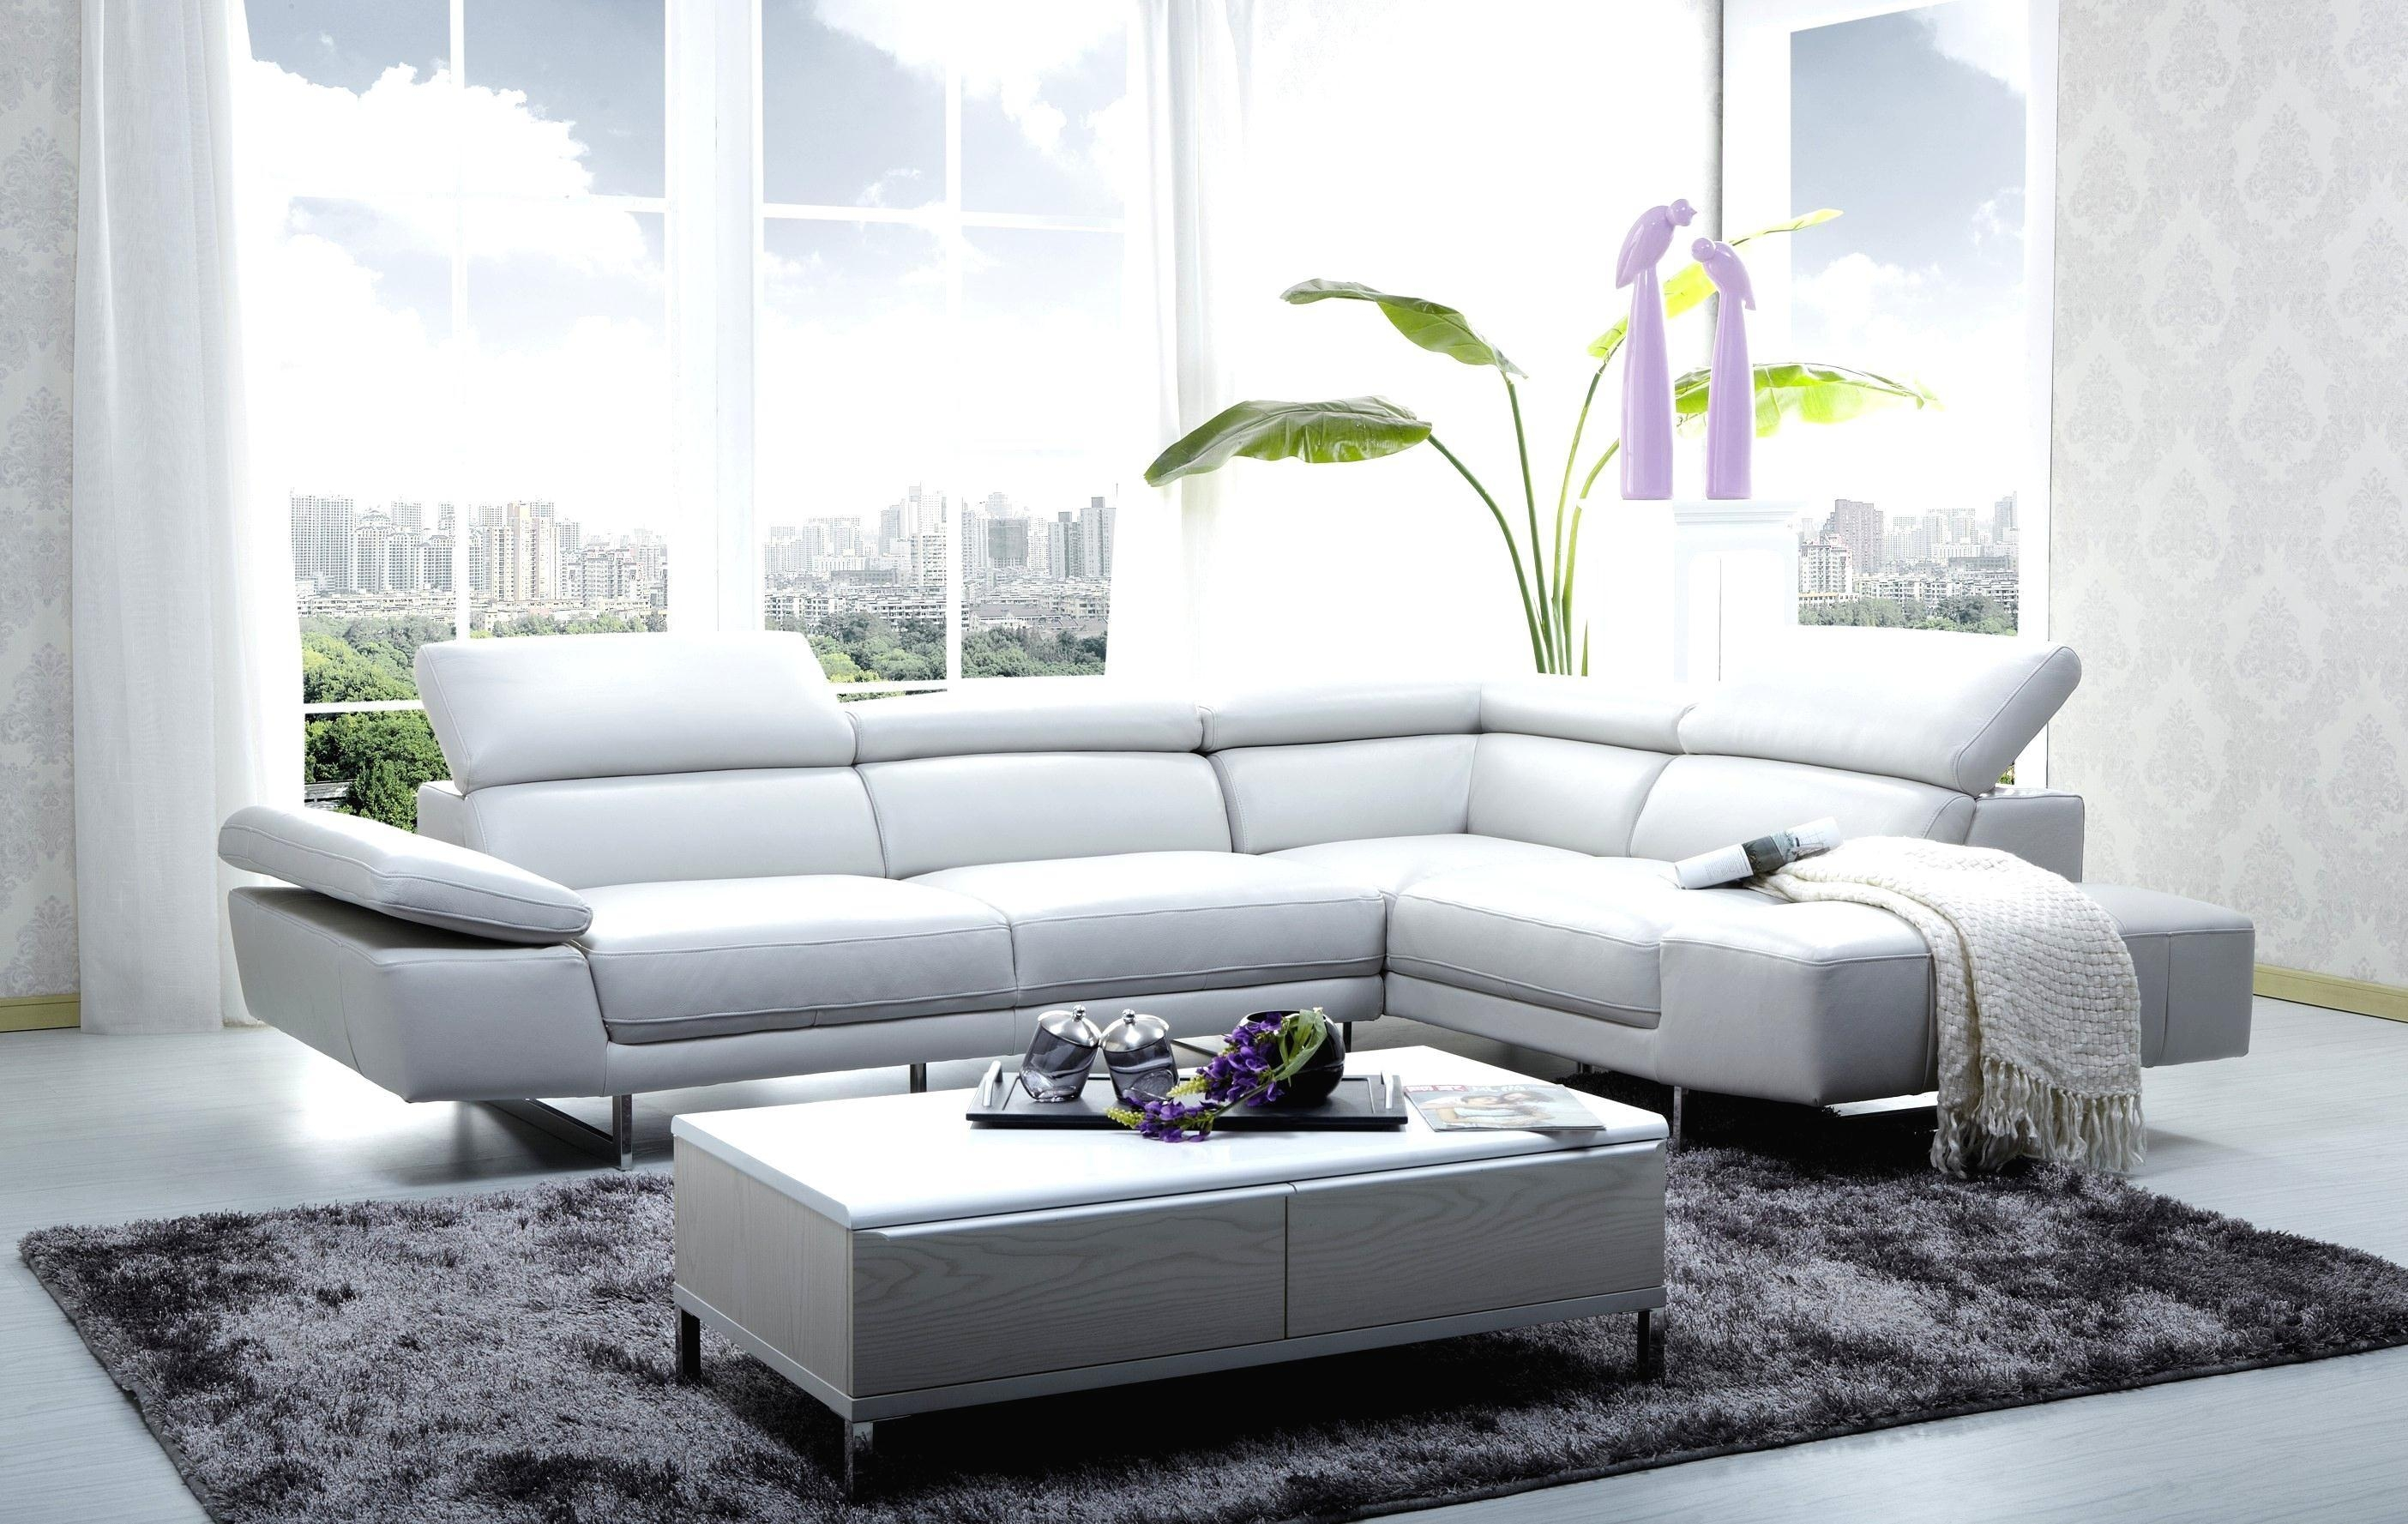 High End Sectional Sofas – Tourdecarroll With Regard To High End Leather Sectionals (Image 15 of 20)